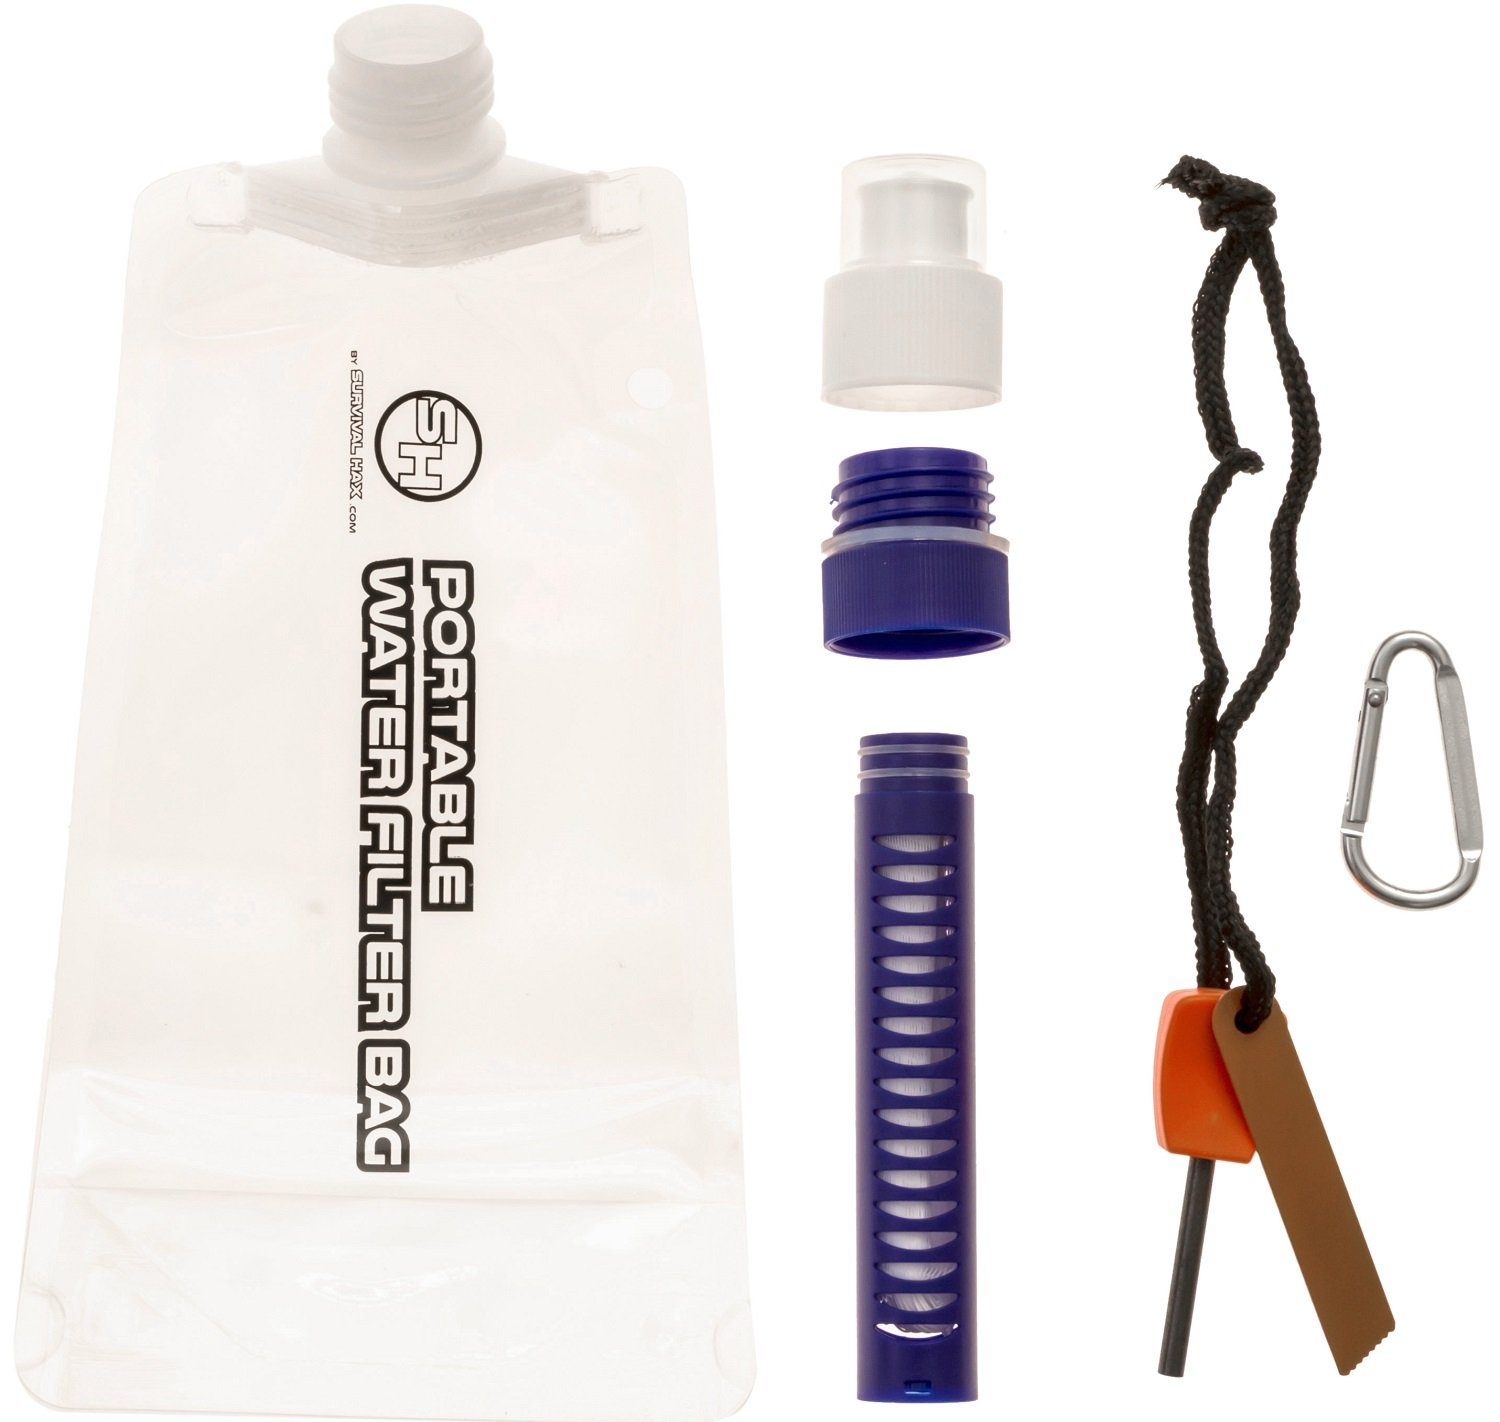 Survival Hax Portable Water Filter Straw with Collapsible Bag for Camping & Hiking